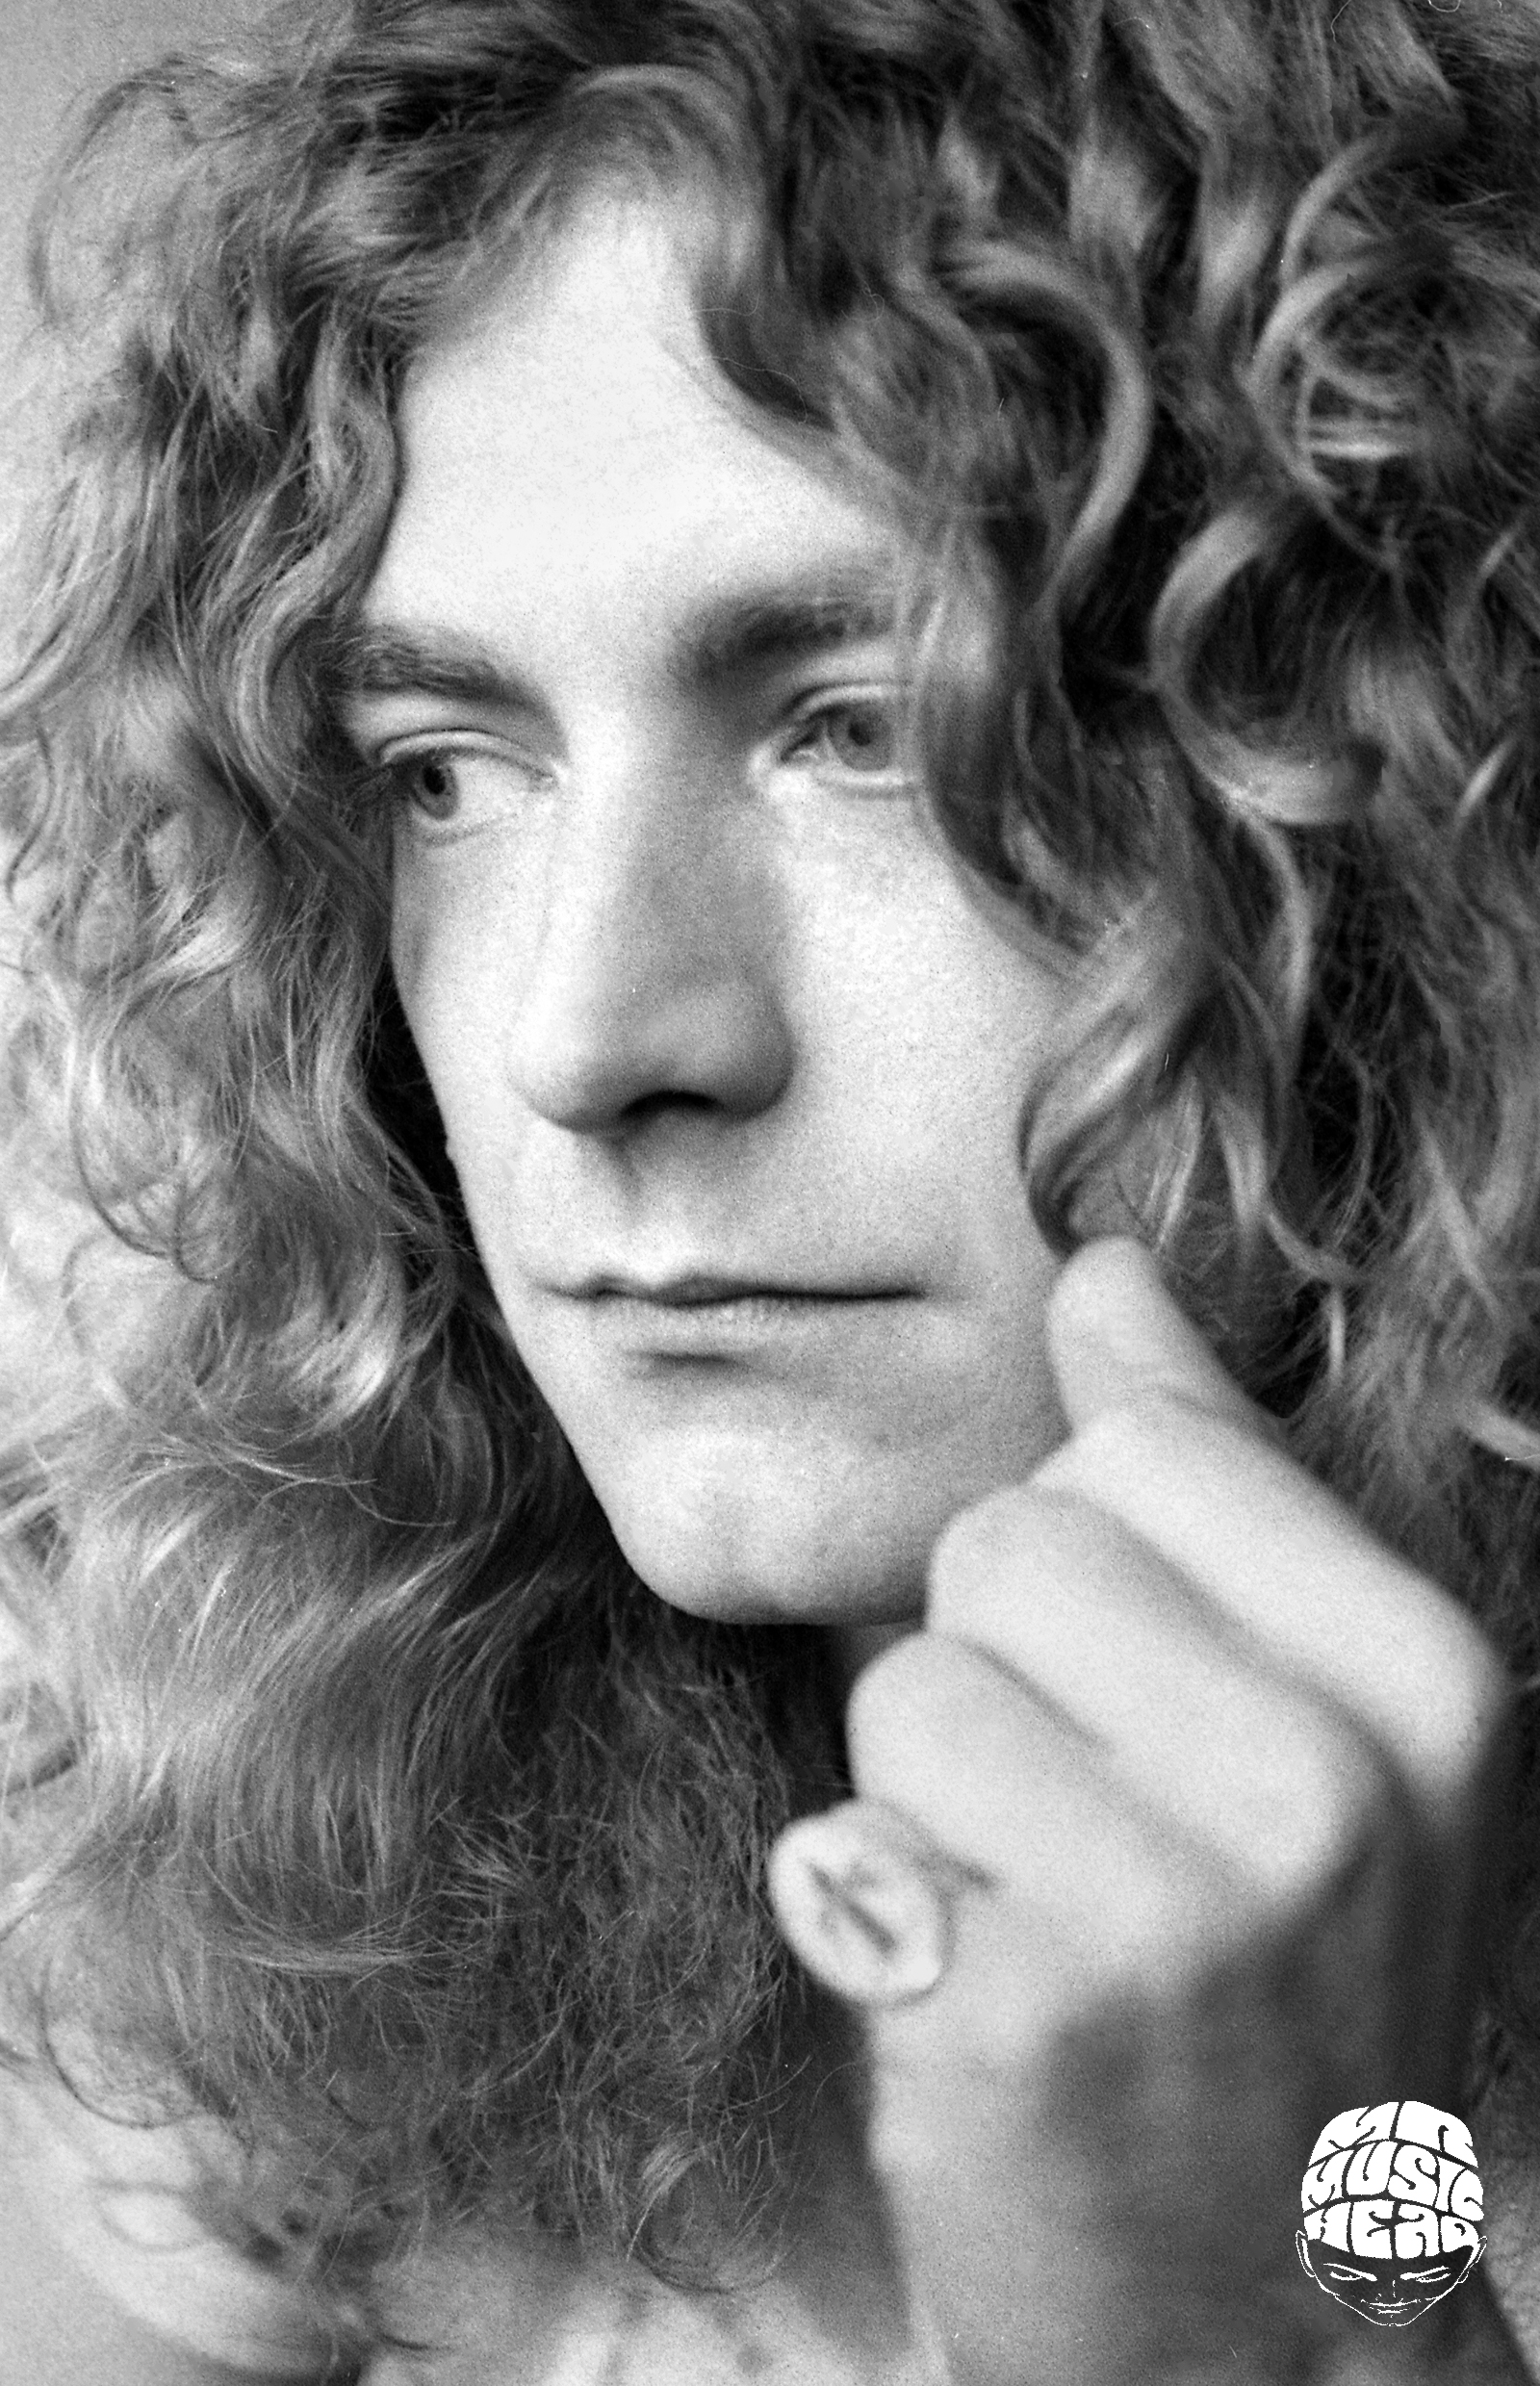 peter simon_robert plant.jpg